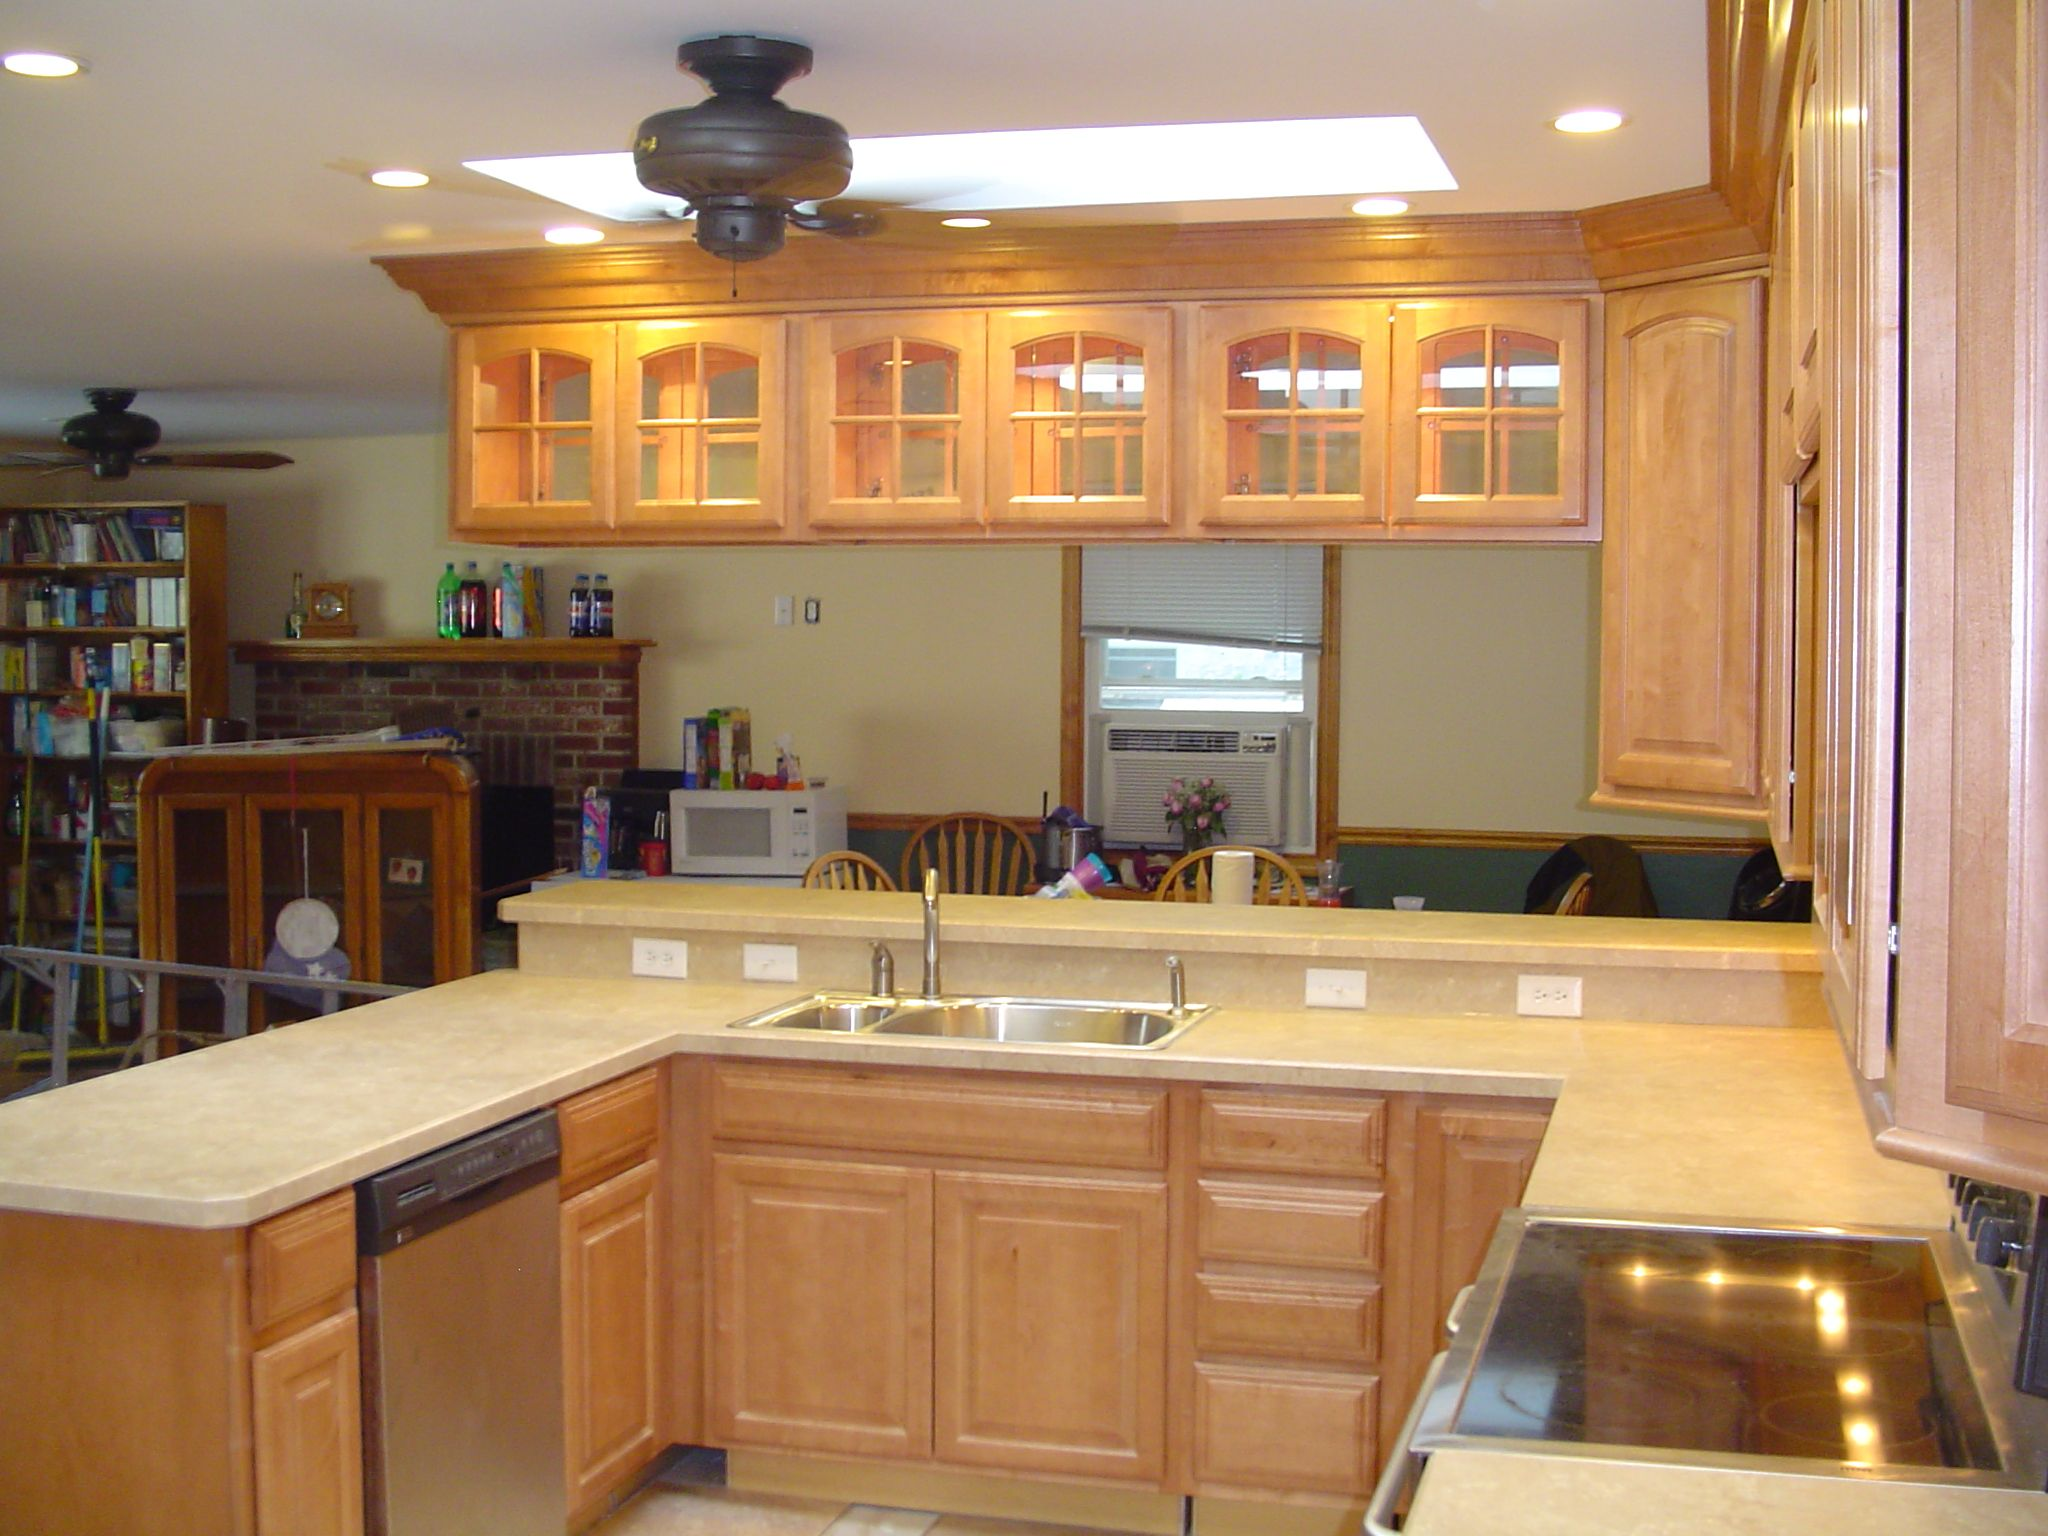 Xraised ranch remodeling raised ranch kitchen after for Kitchen remodel raised ranch